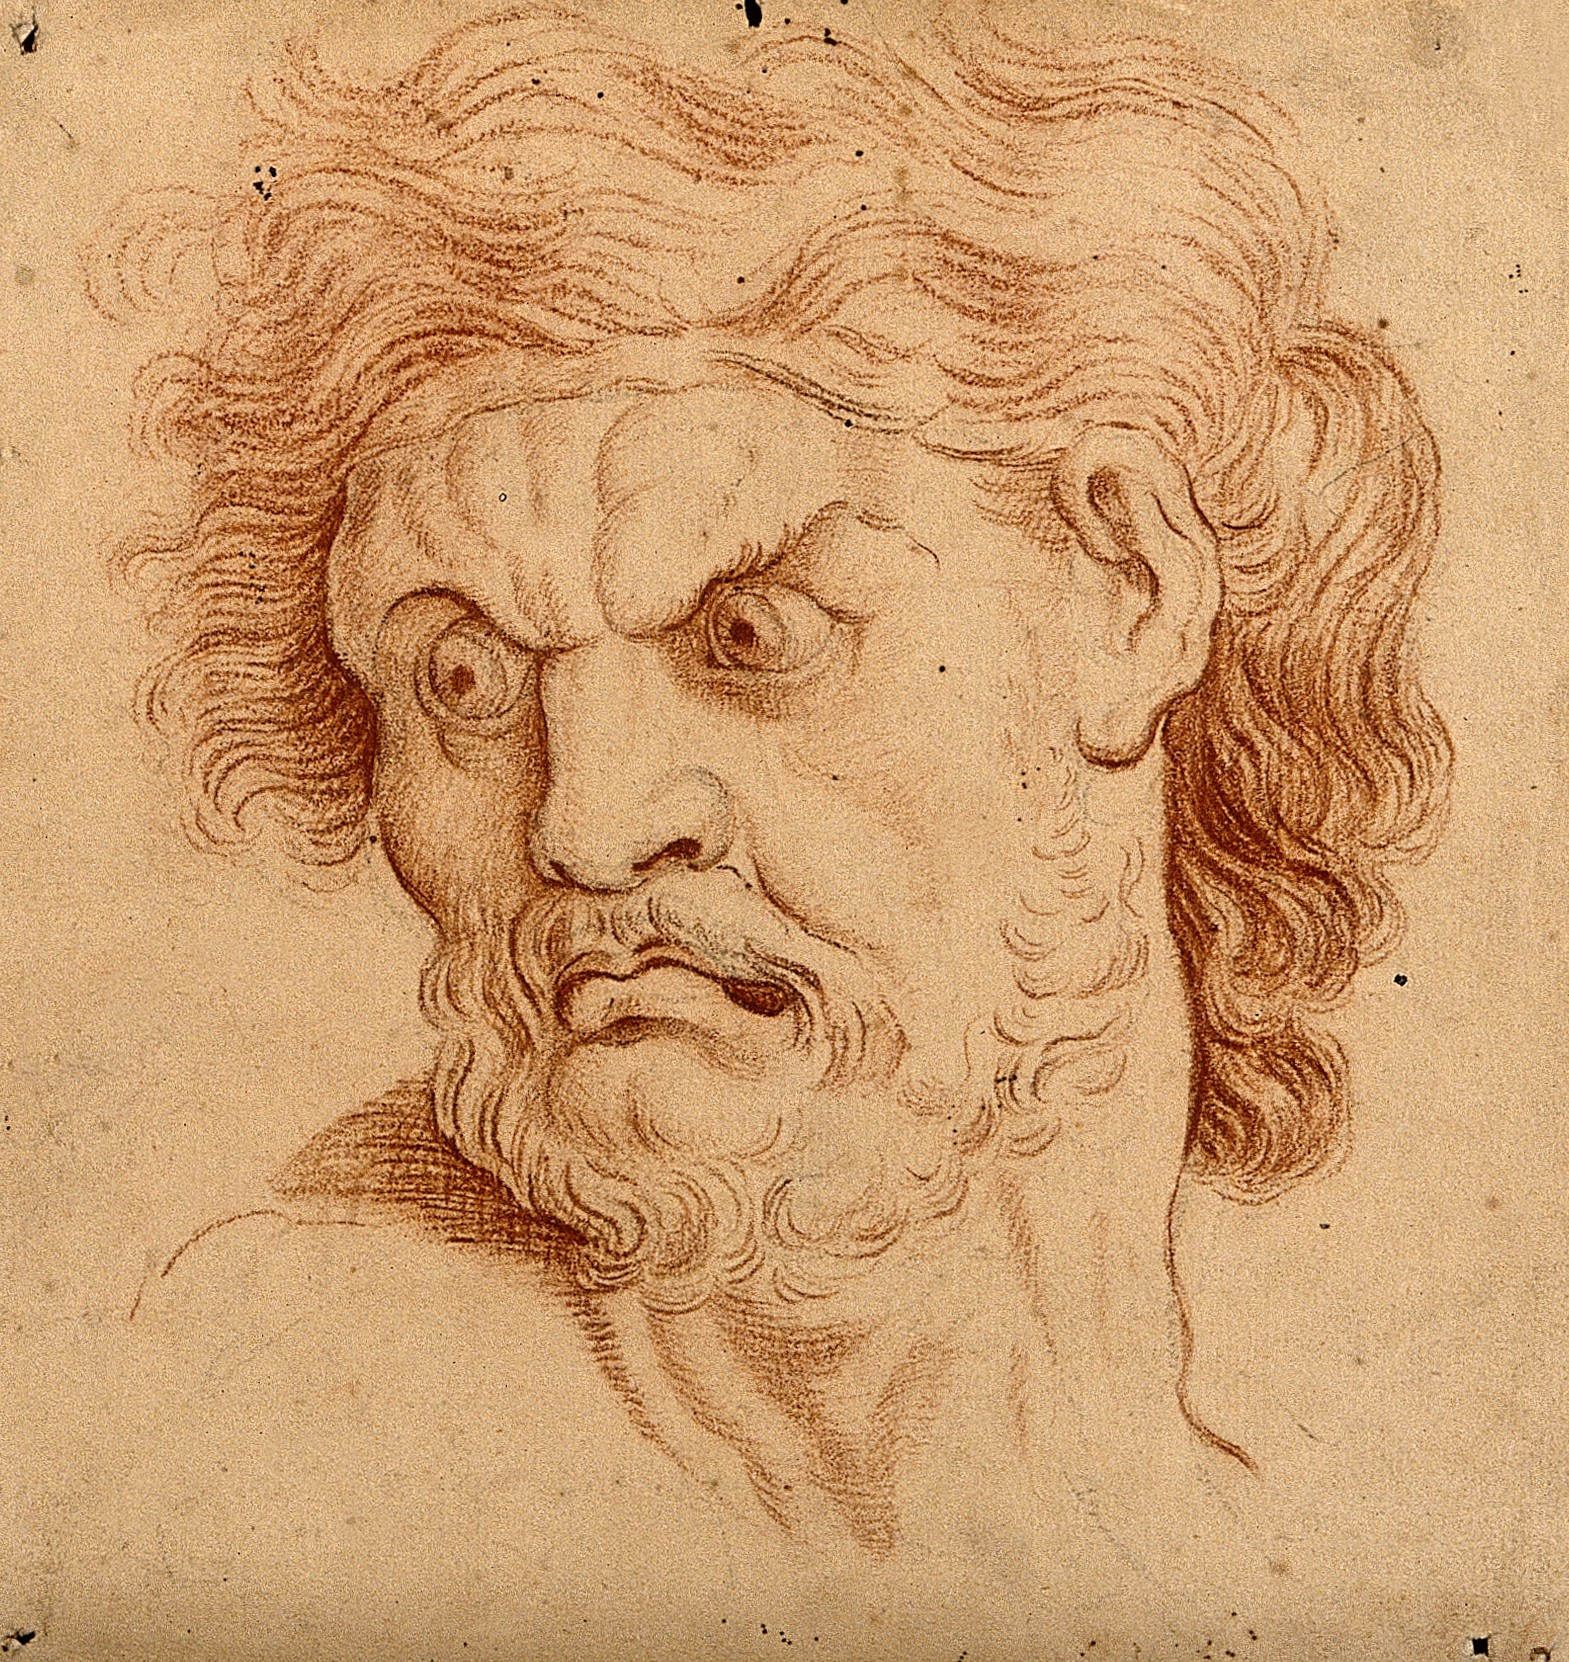 Drawing of the face of an angry man by C. Le Brun sometime in the 18th century